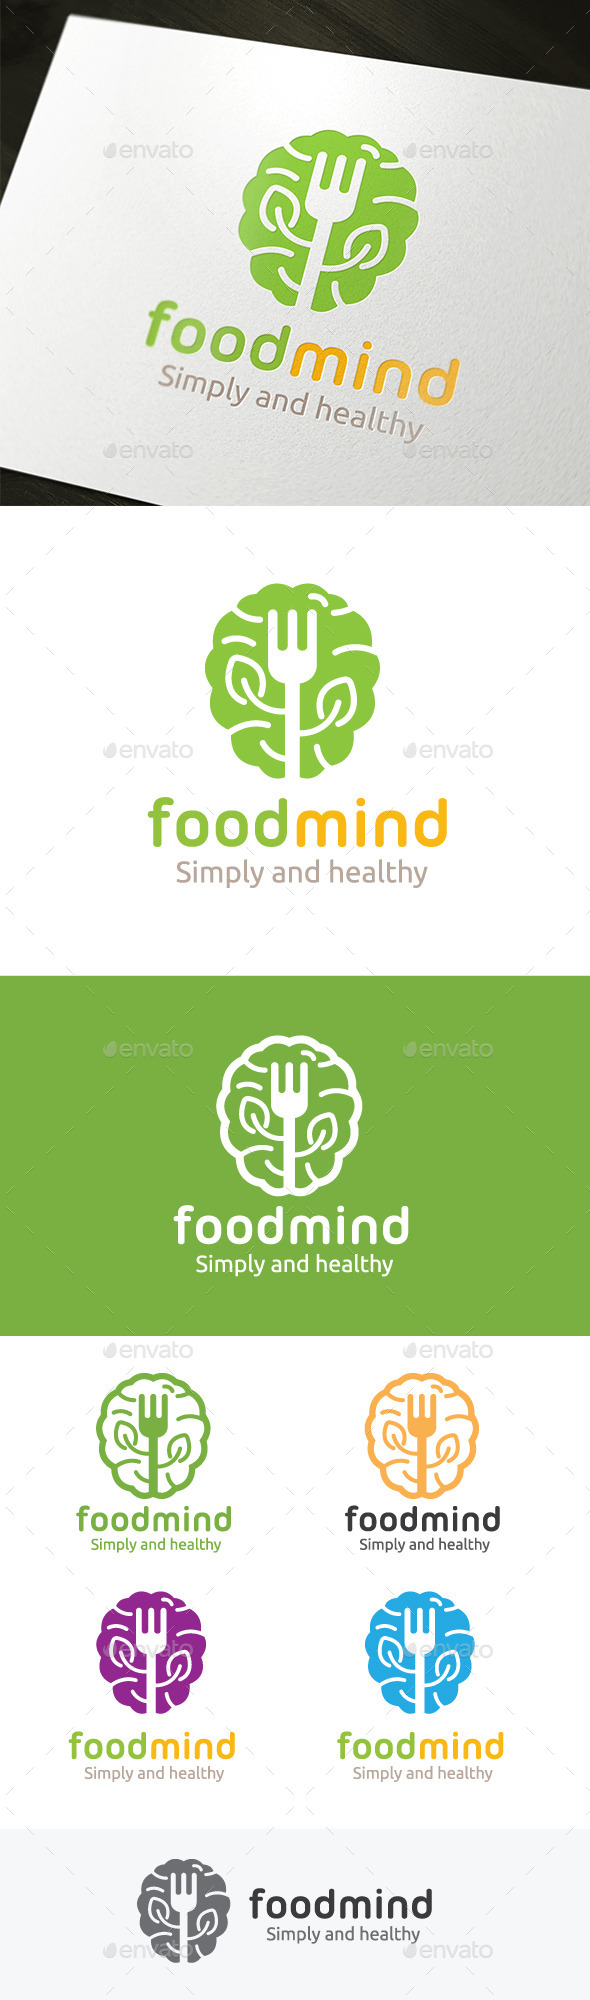 GraphicRiver Food Mind 9453759